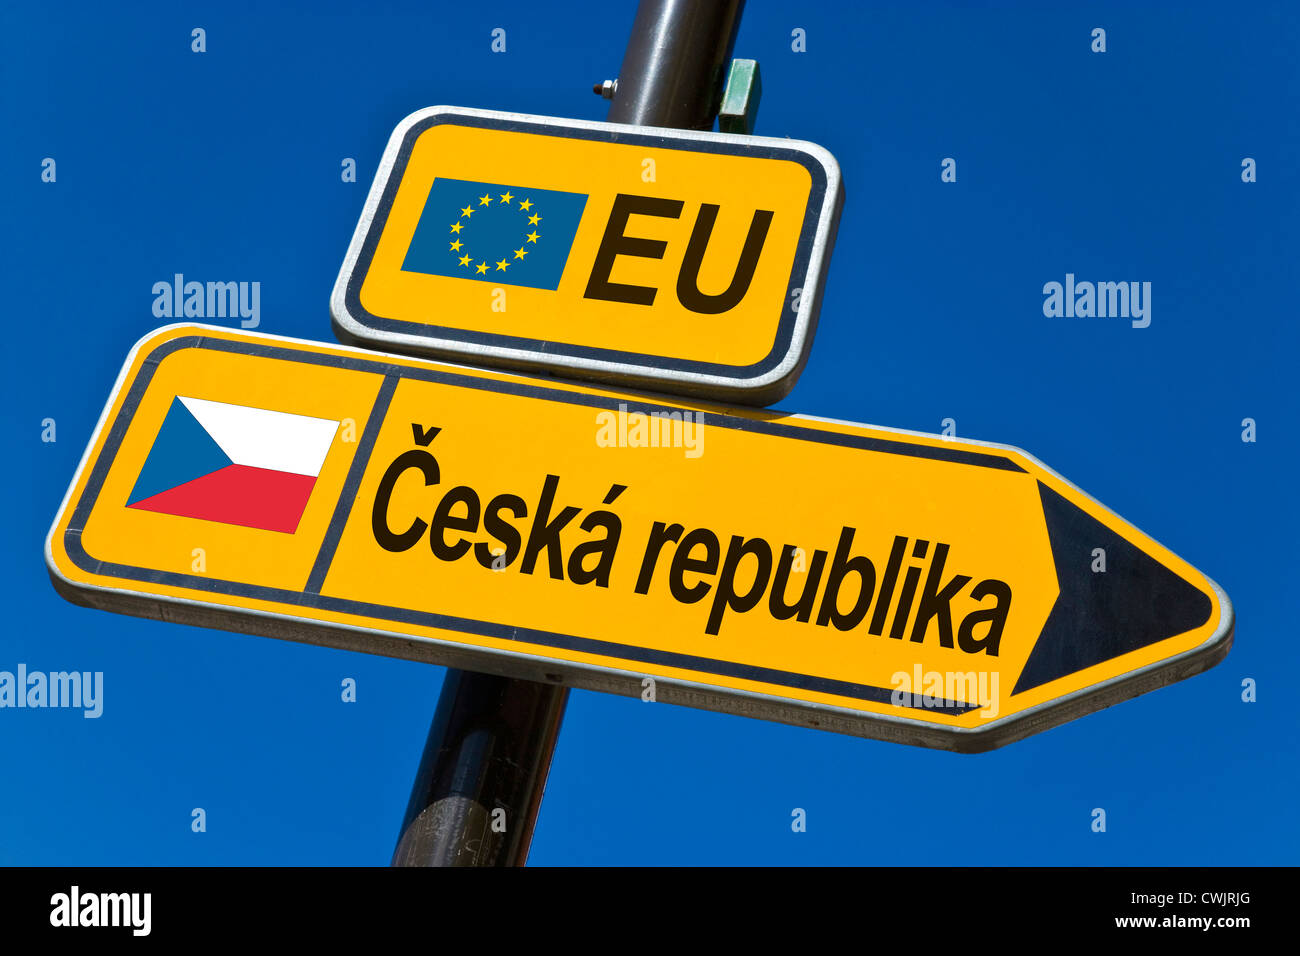 European Union and flag of Czech Republic - Stock Image